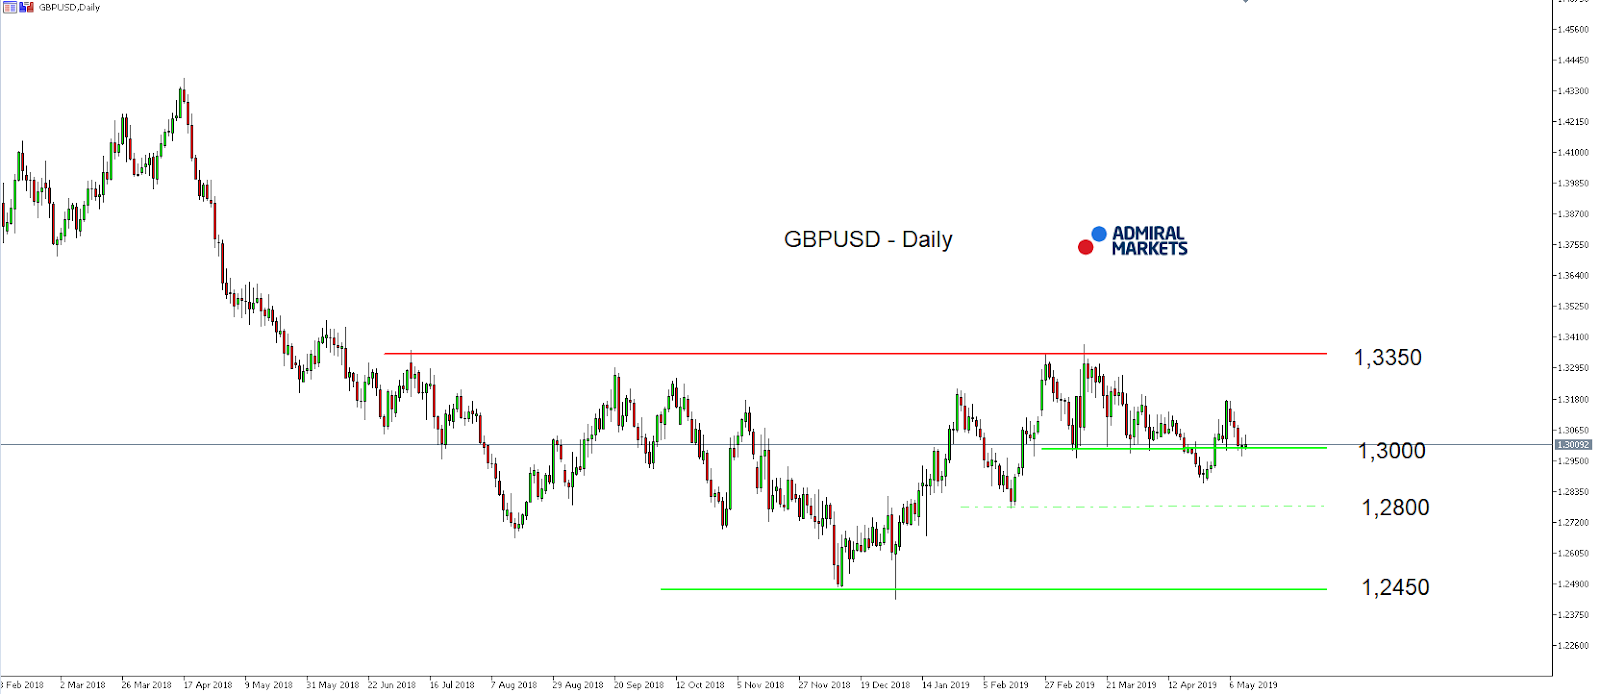 GBP/USD index daily chart